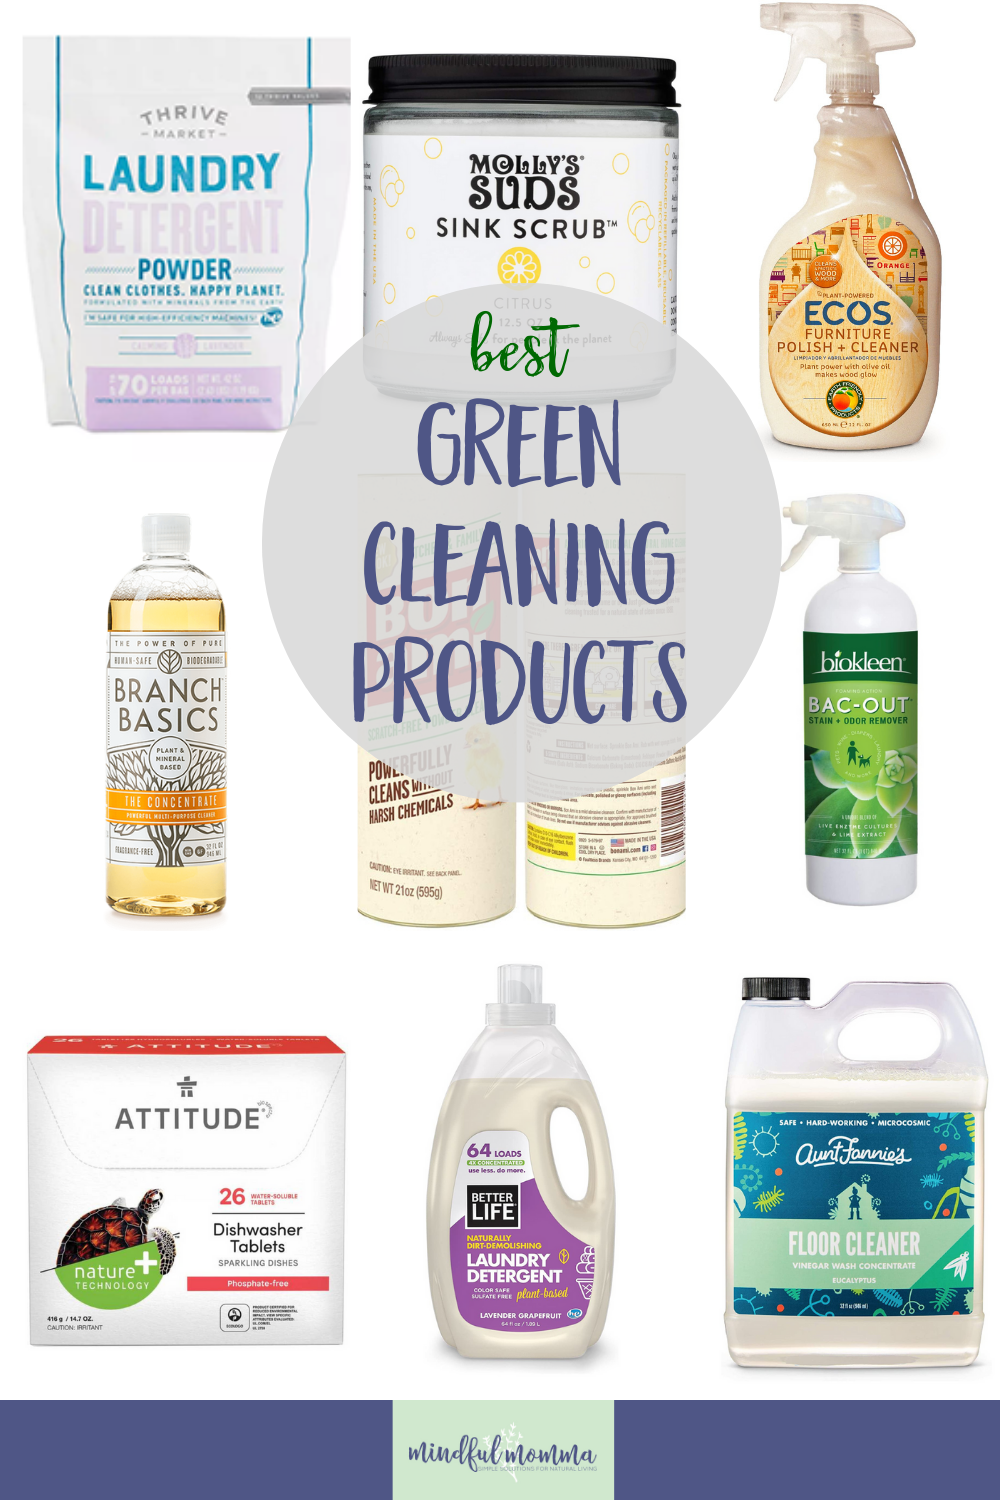 Discover the best green cleaning products and brands that really work - for laundry, dishes and the whole house! Plus learn why you should make the switch to non-toxic, eco-friendly cleaning products in the first place. via @MindfulMomma